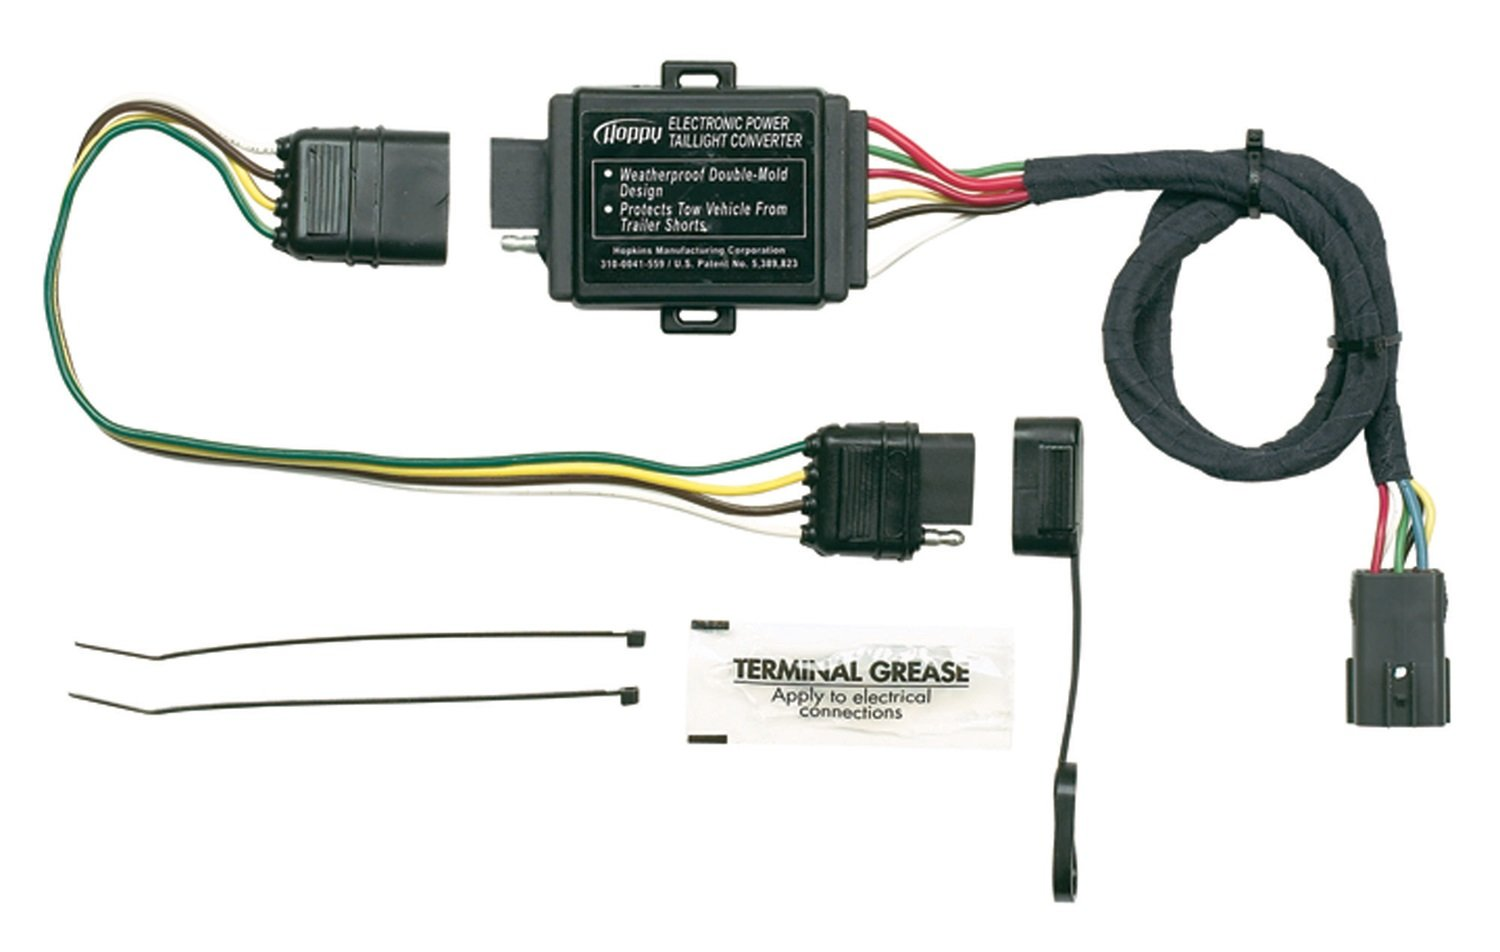 61dKvjPegbL._SL1500_ amazon com hopkins 11143875 plug in simple vehicle to trailer universal trailer wiring harness at soozxer.org